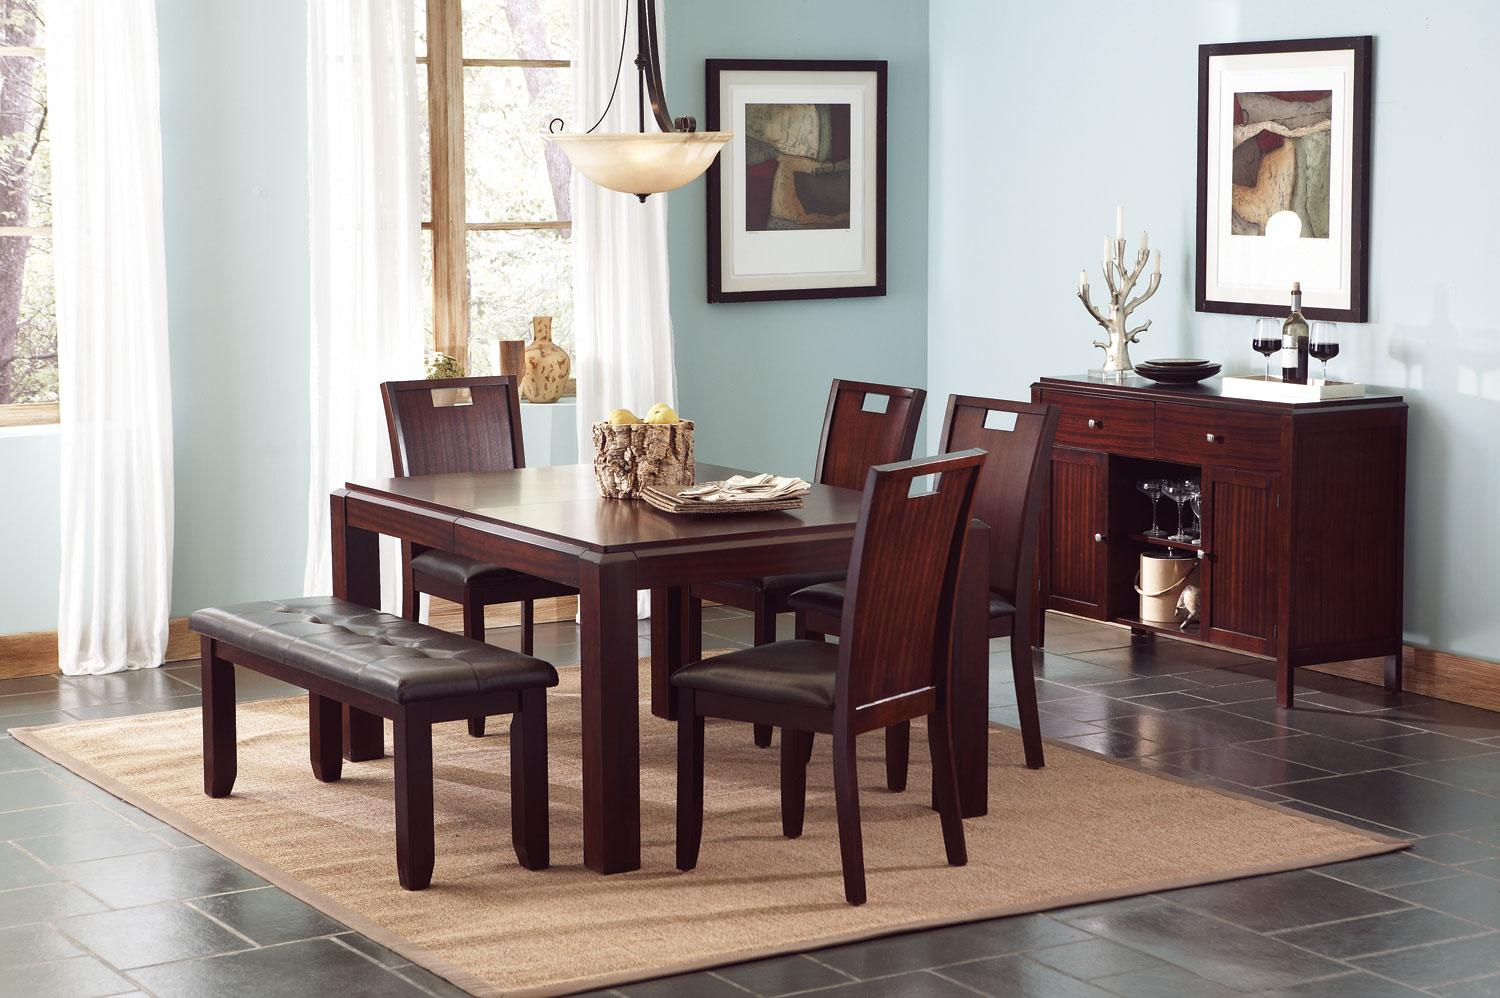 Discount Furniture Athens GA Atlanta Furniture Specialist